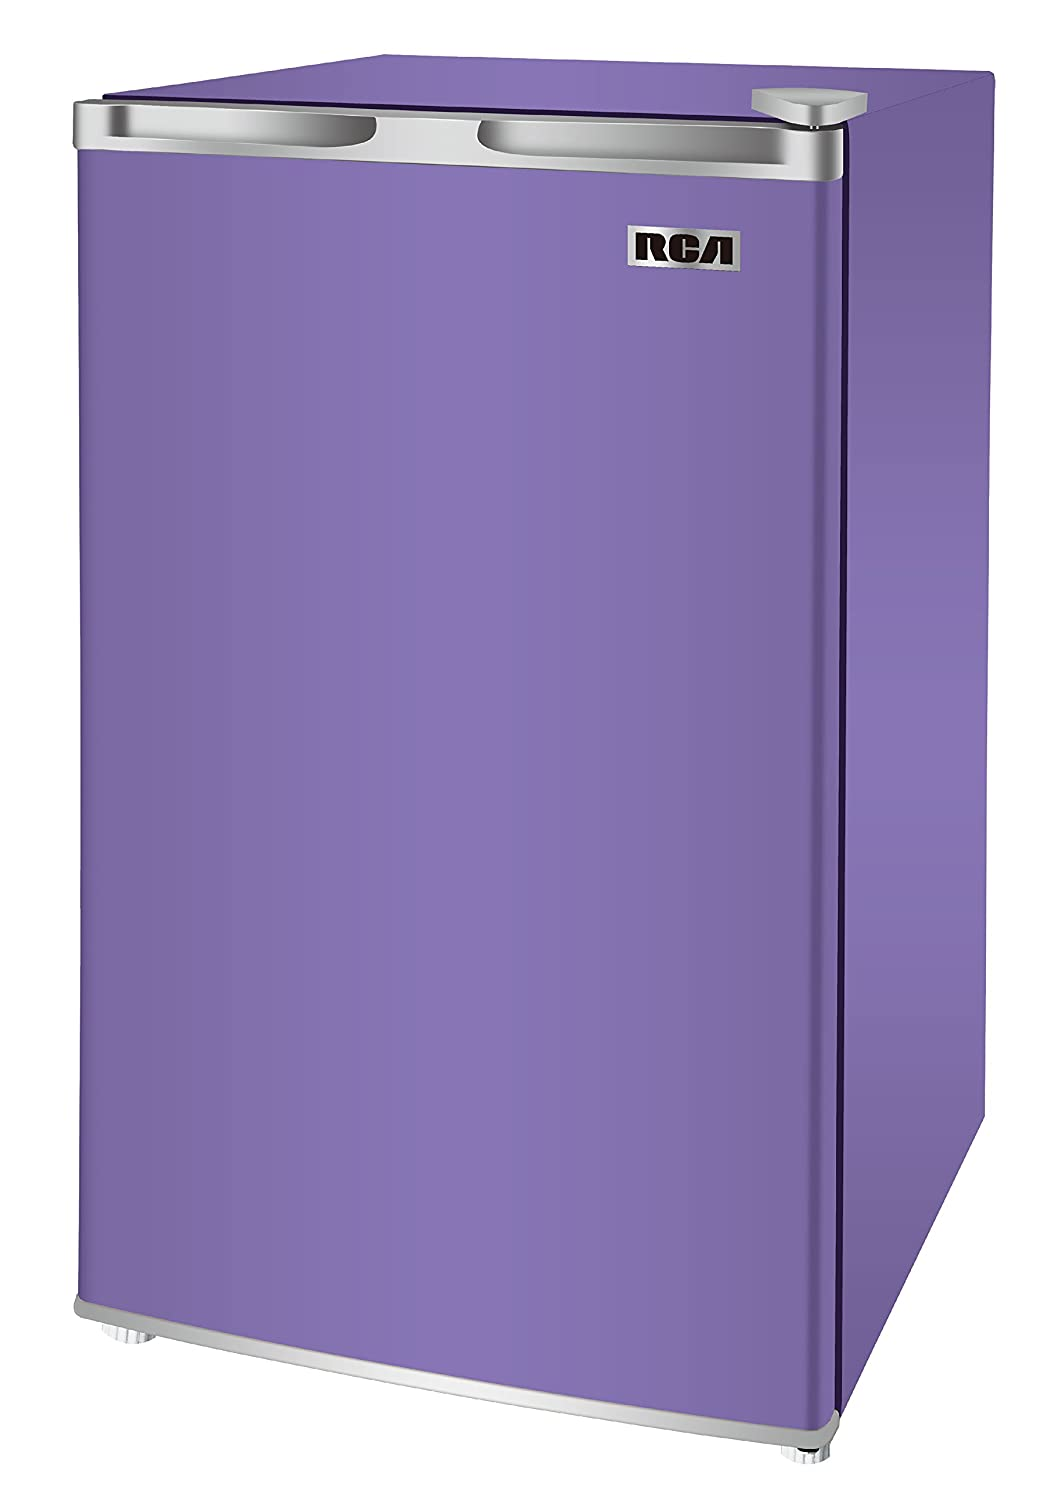 RCA RFR321-Purple Fridge, 3.2 Cubic Feet, Purple